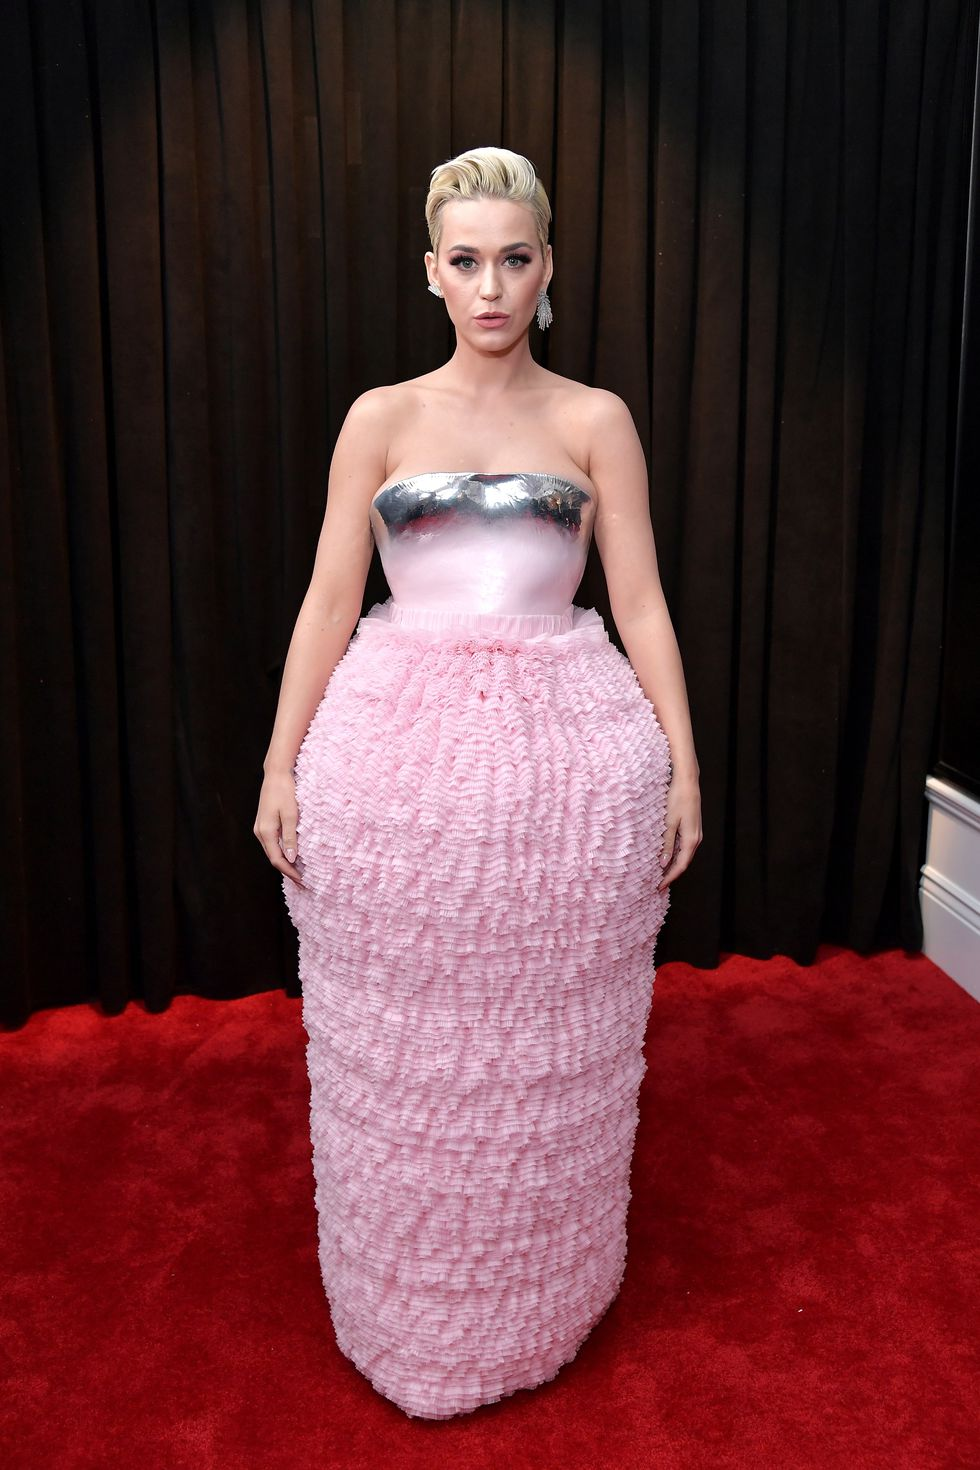 Not feeling this look on Katy.  Designer: not sure, too lazy to look.